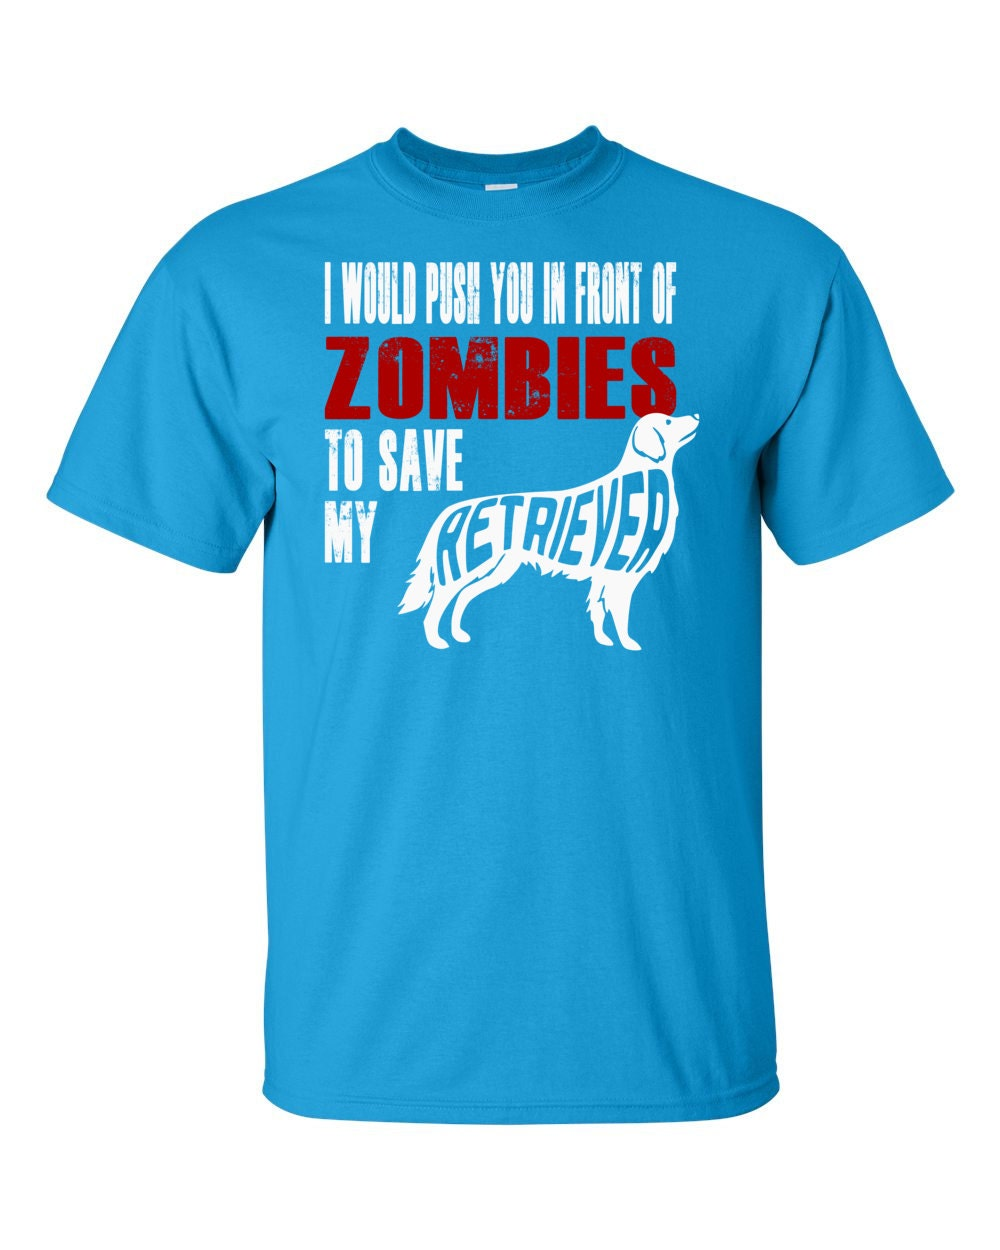 Golden Retriever Shirt - I Would Push You In Front Of Zombies To Save My Retriever T-shirt